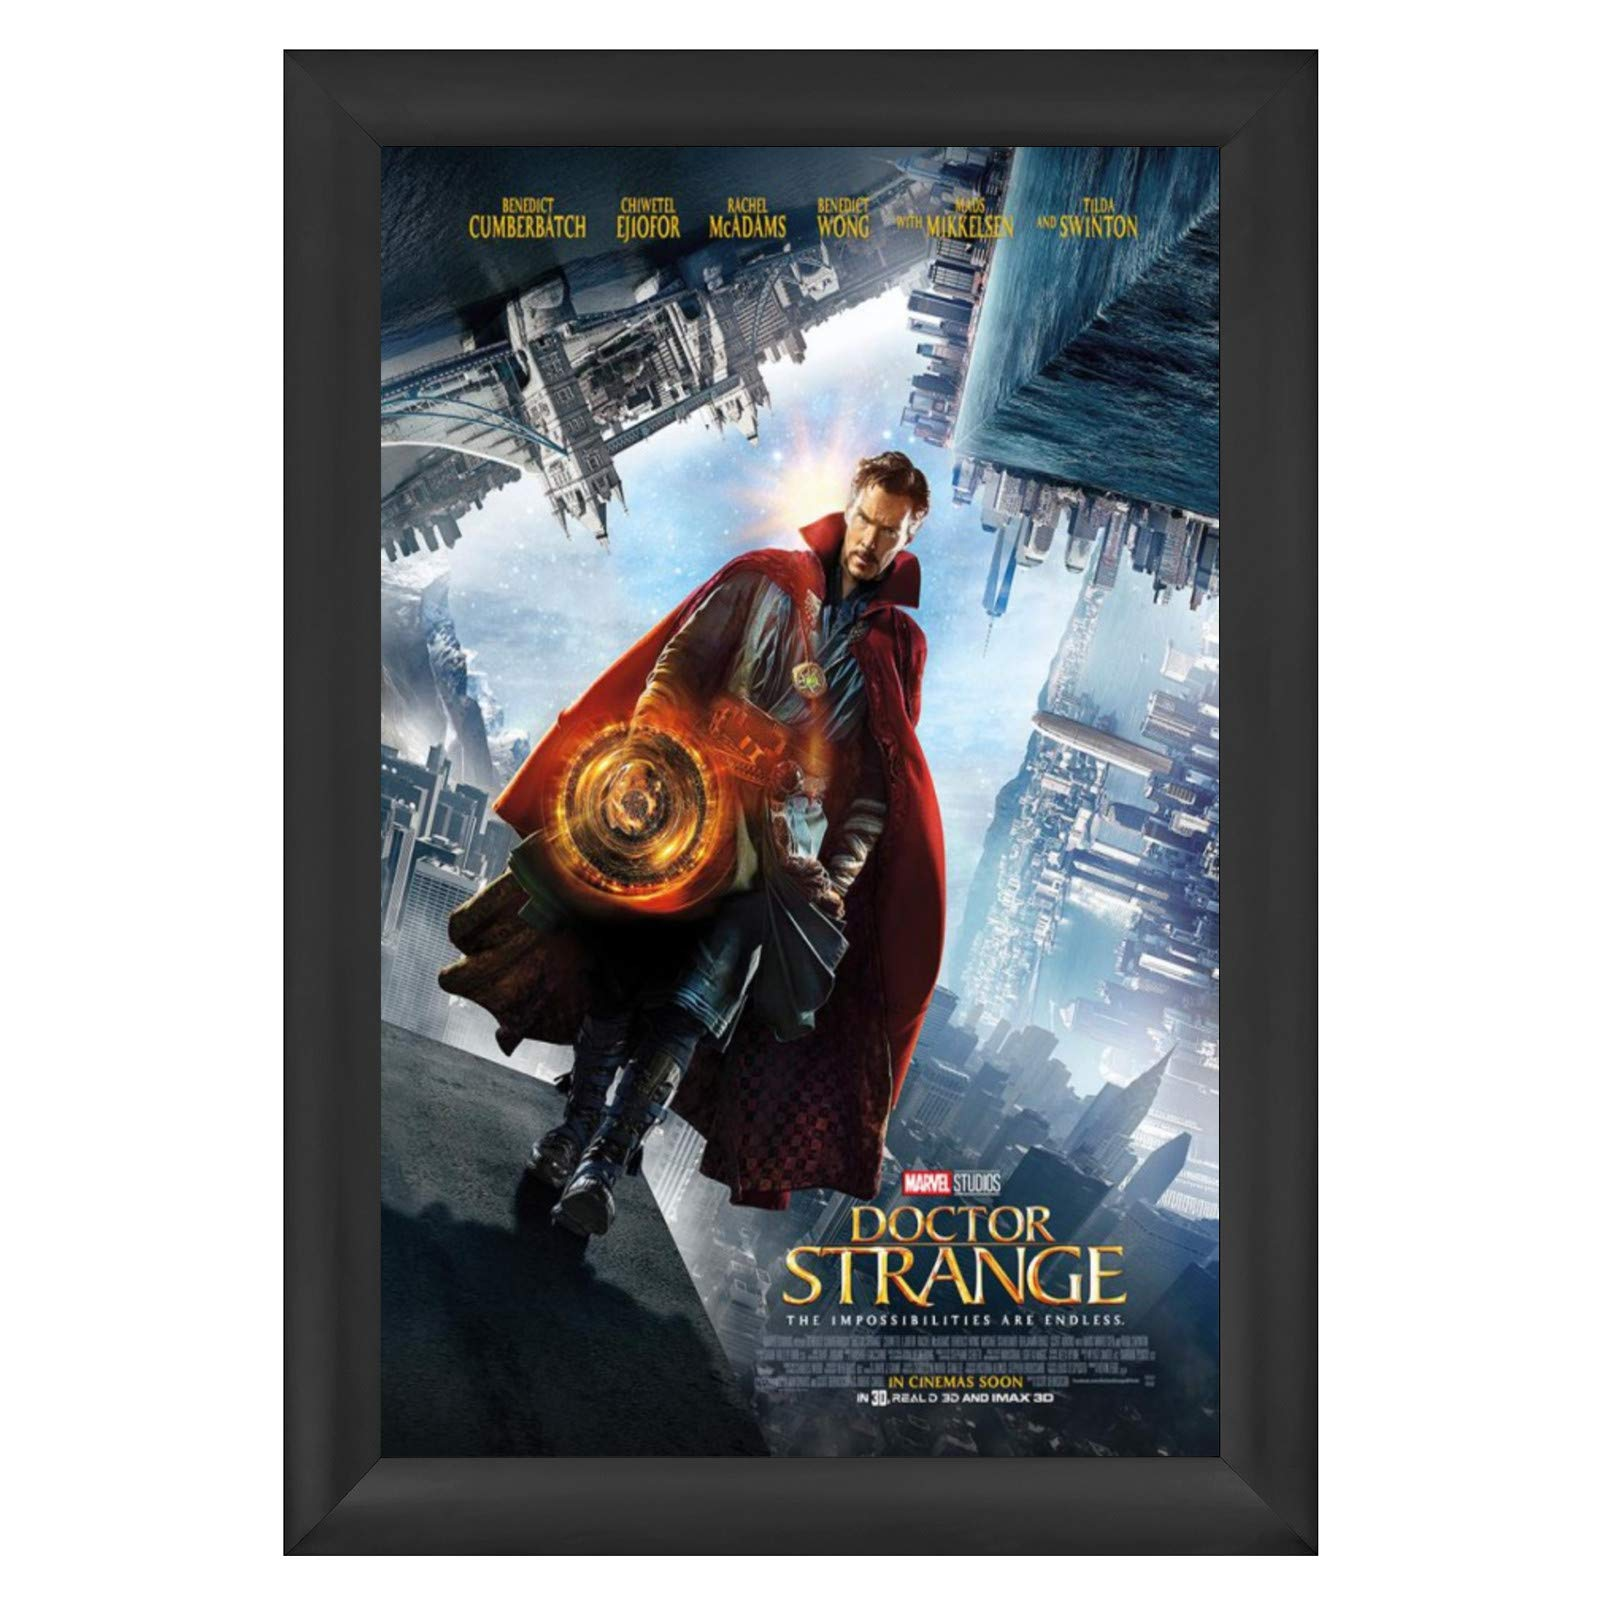 SnapeZo Movie Poster Frame 27x40 Inches, Black 2.2 Inch Aluminum Profile, Front-Loading Snap Frame, Wall Mounting, Super-Wide Series for One Sheet Movie Posters